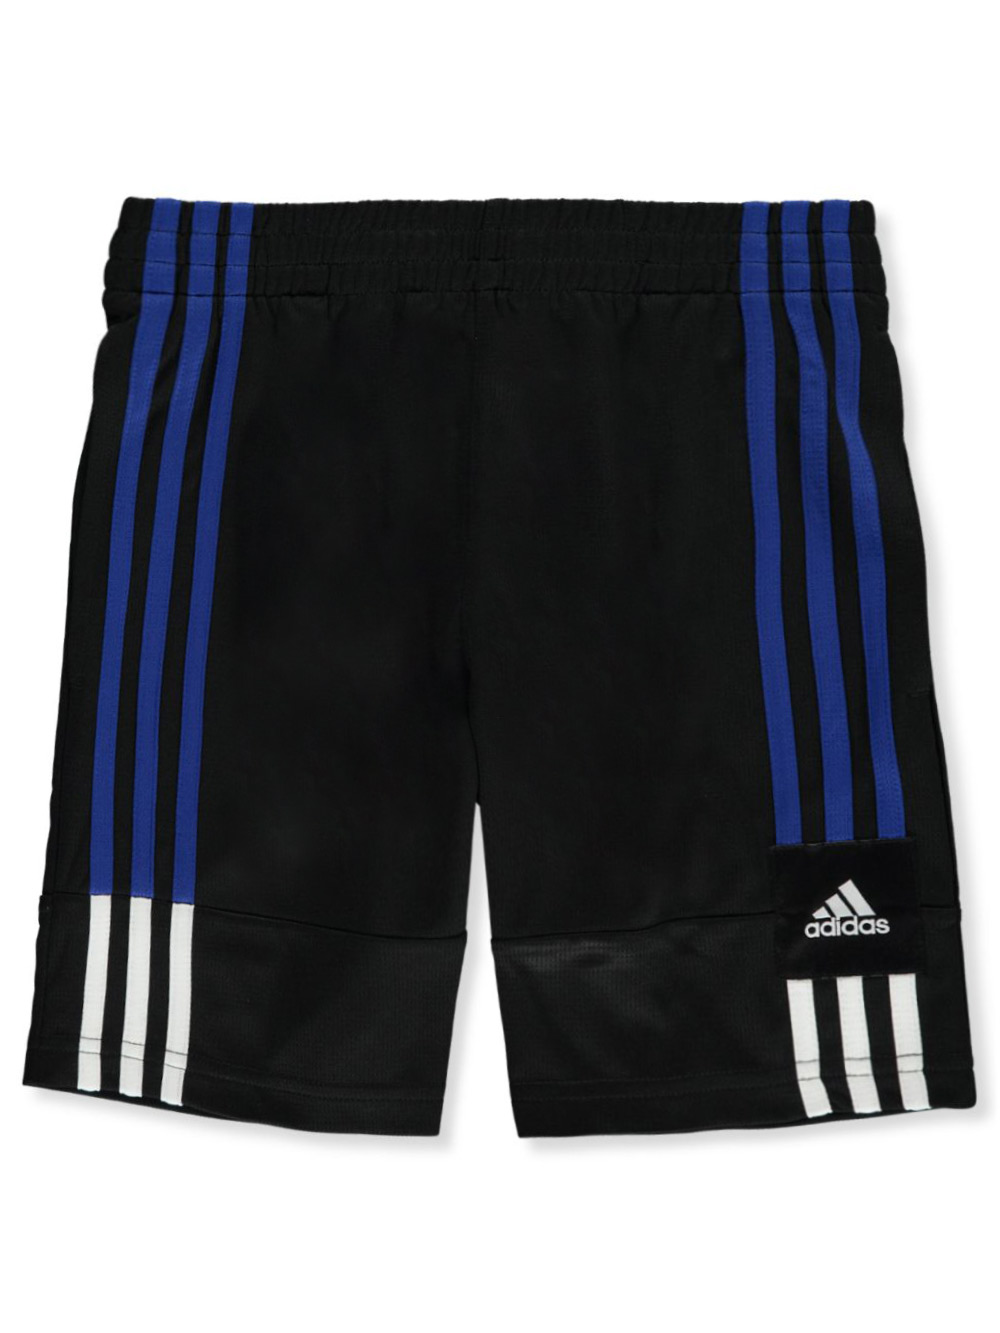 Boys' Performance Mesh Triple Stripe Shorts